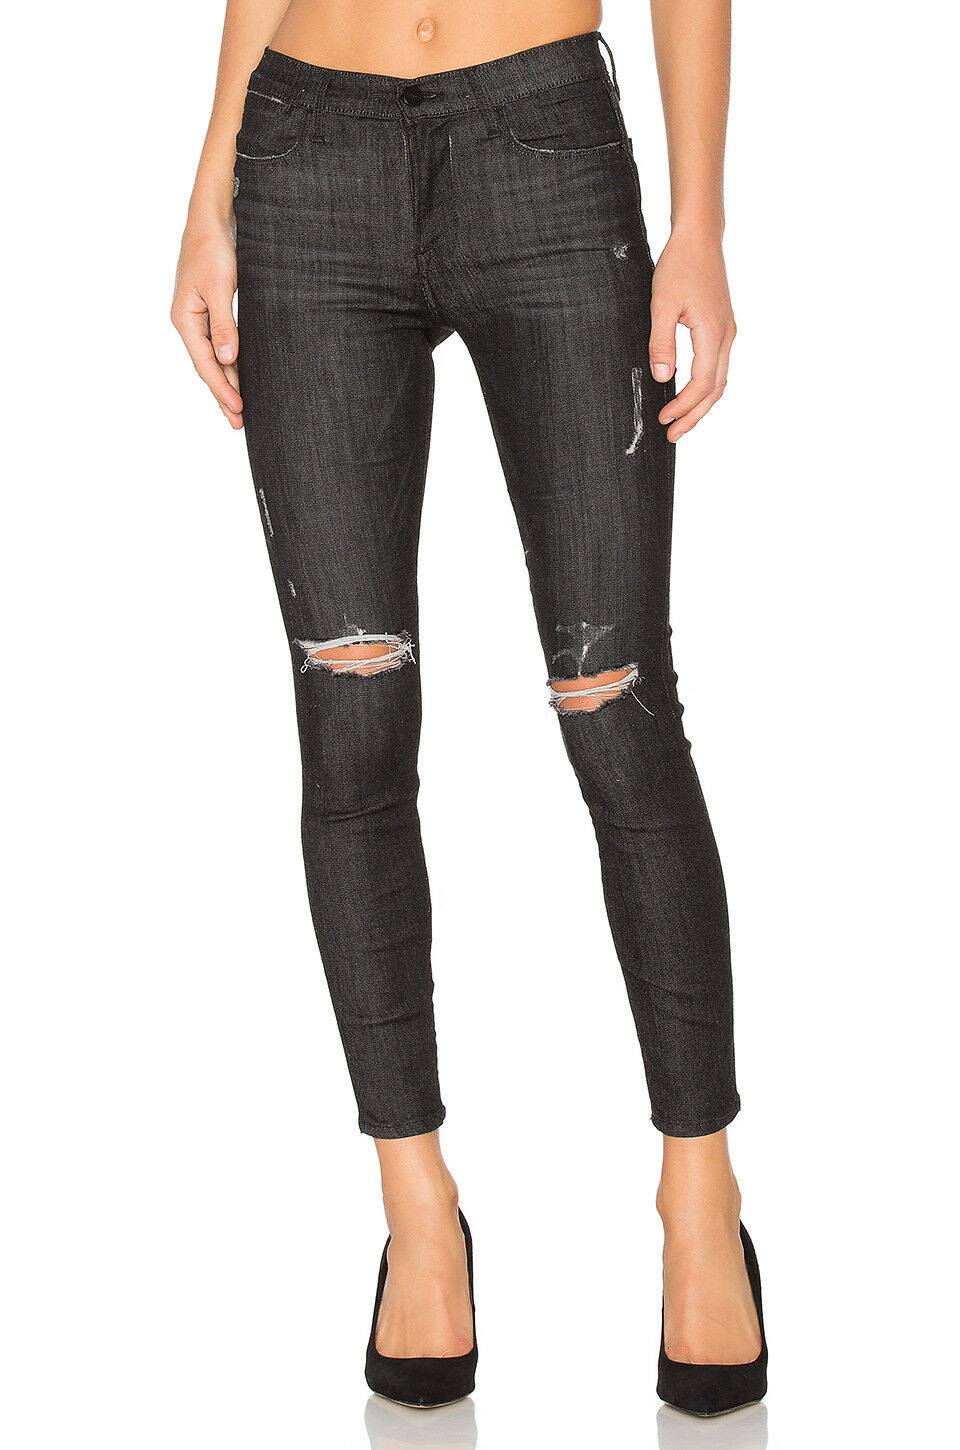 239 NEW FRAME Denim Le Skinny De Jeanne Distressed Skinny in Knox - Size 27